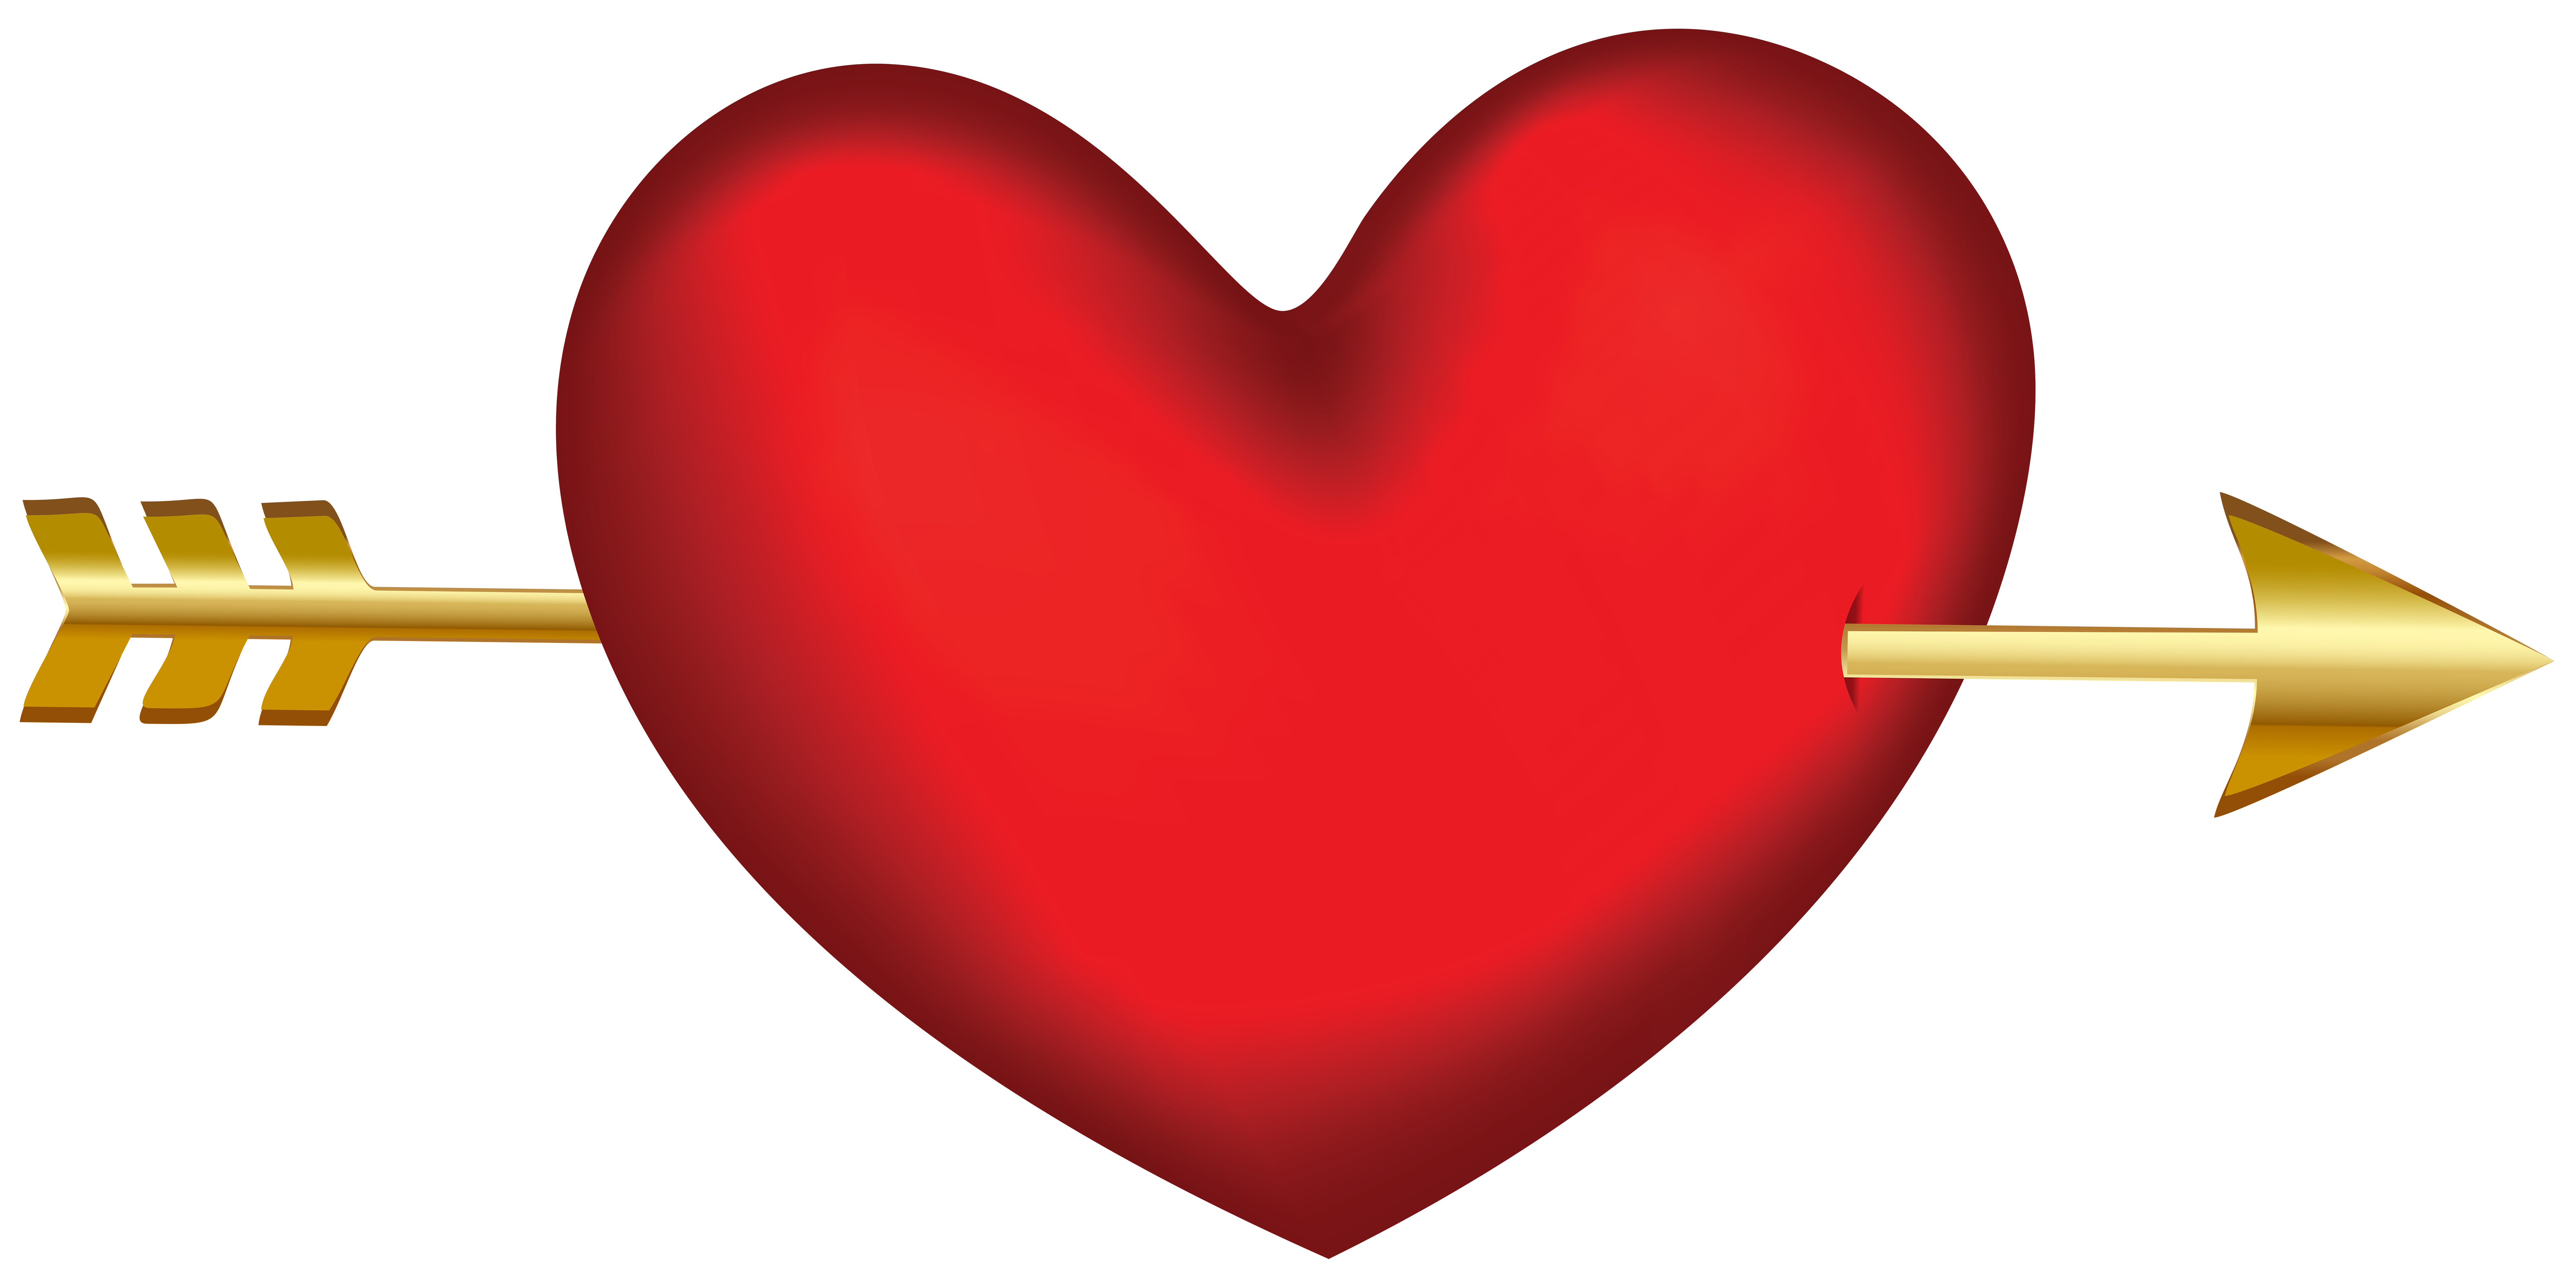 Arrow with heart png. Transparent clip art image